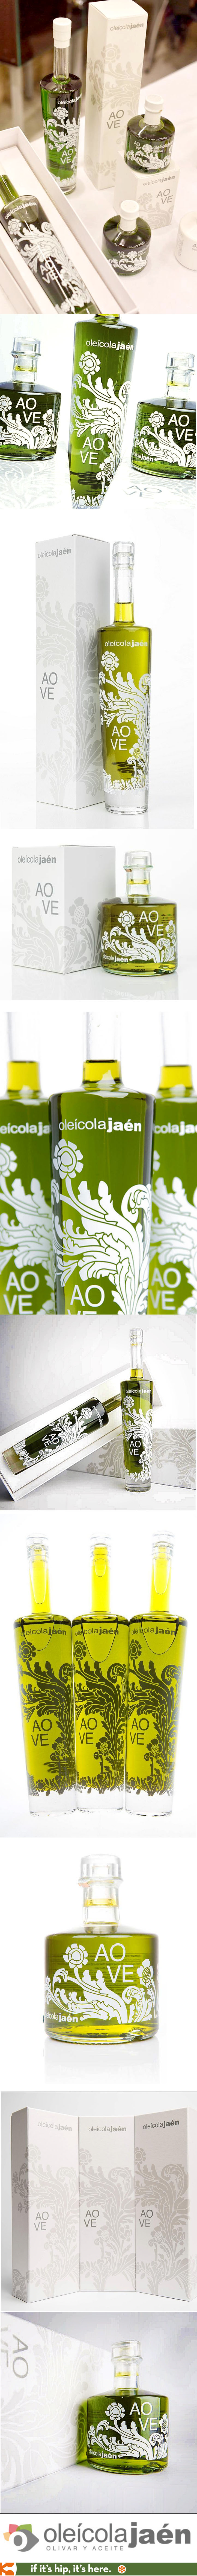 Oleicola jaenus extra virgin olive oils come in lovely bottles and